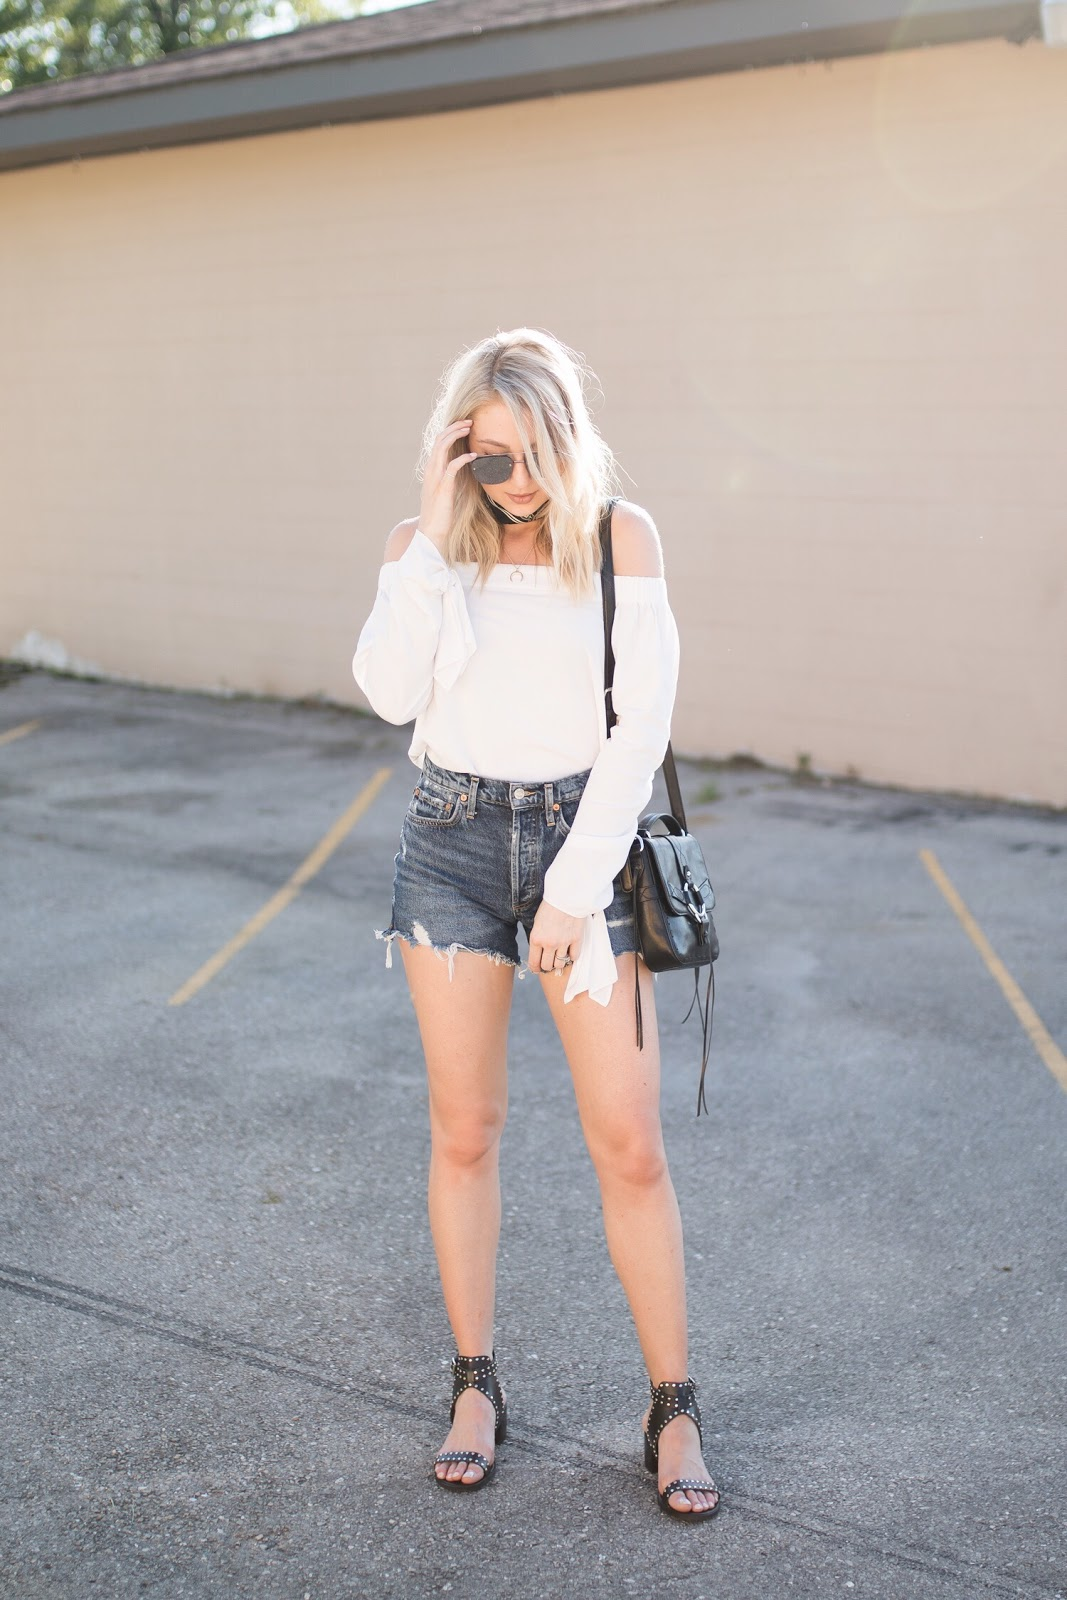 How to style an off-the-shoulder top & shorts